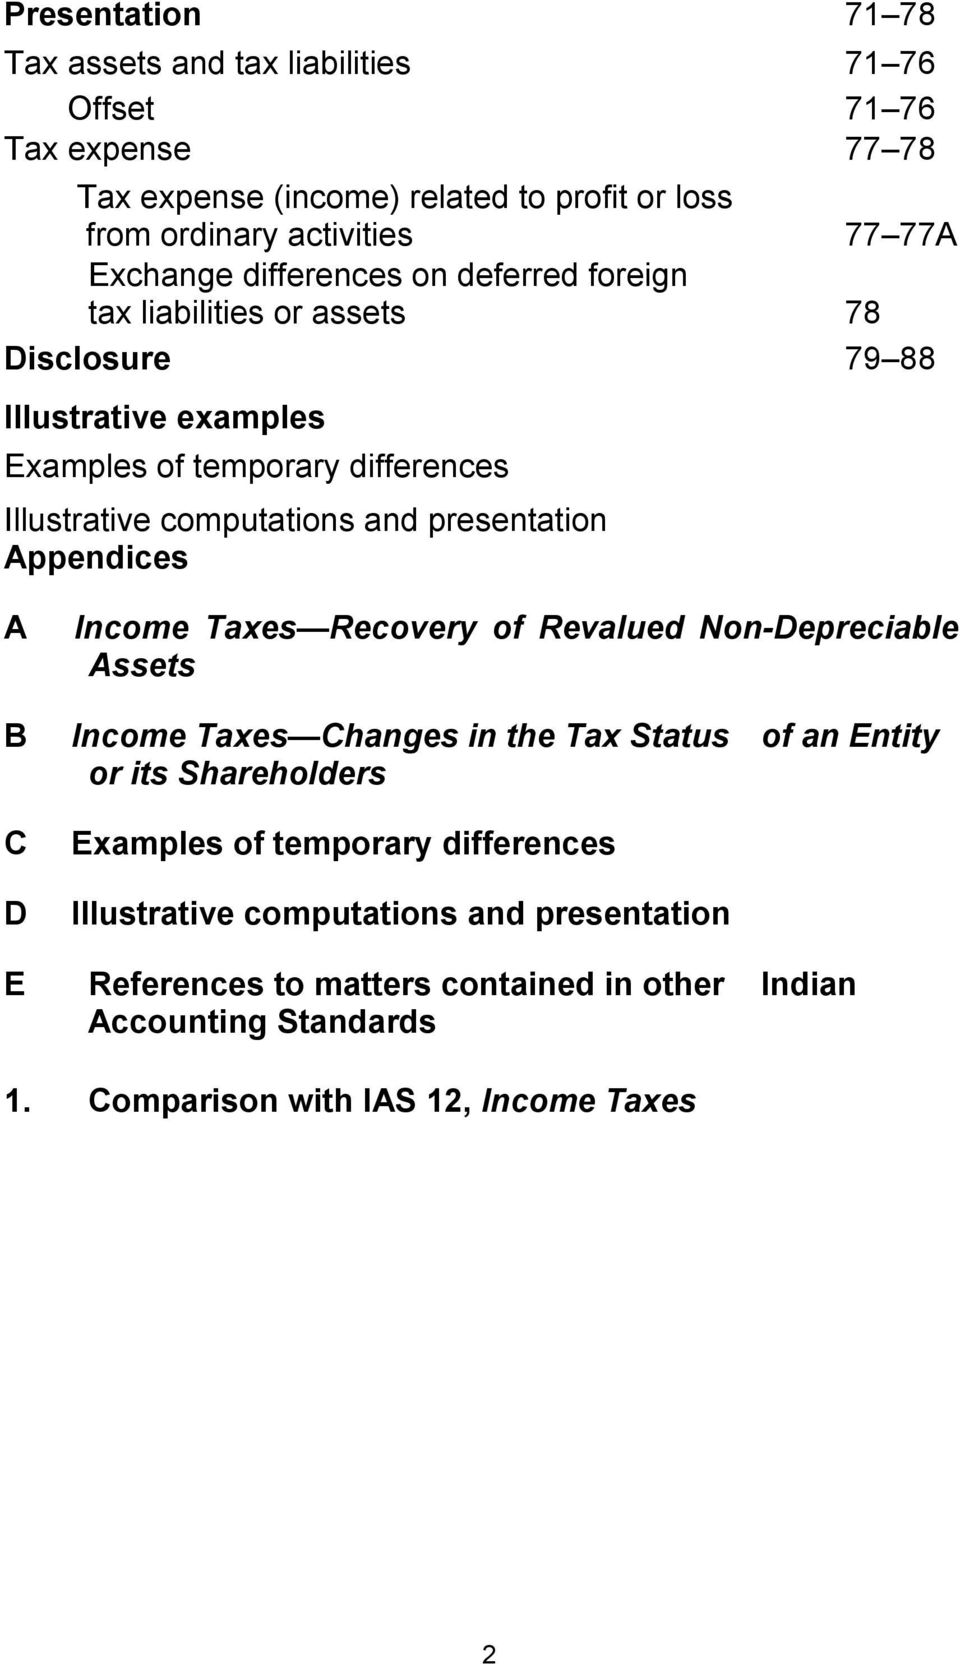 presentation Appendices A B C D Income Taxes Recovery of Revalued Non-Depreciable Assets Income Taxes Changes in the Tax Status of an Entity or its Shareholders Examples of